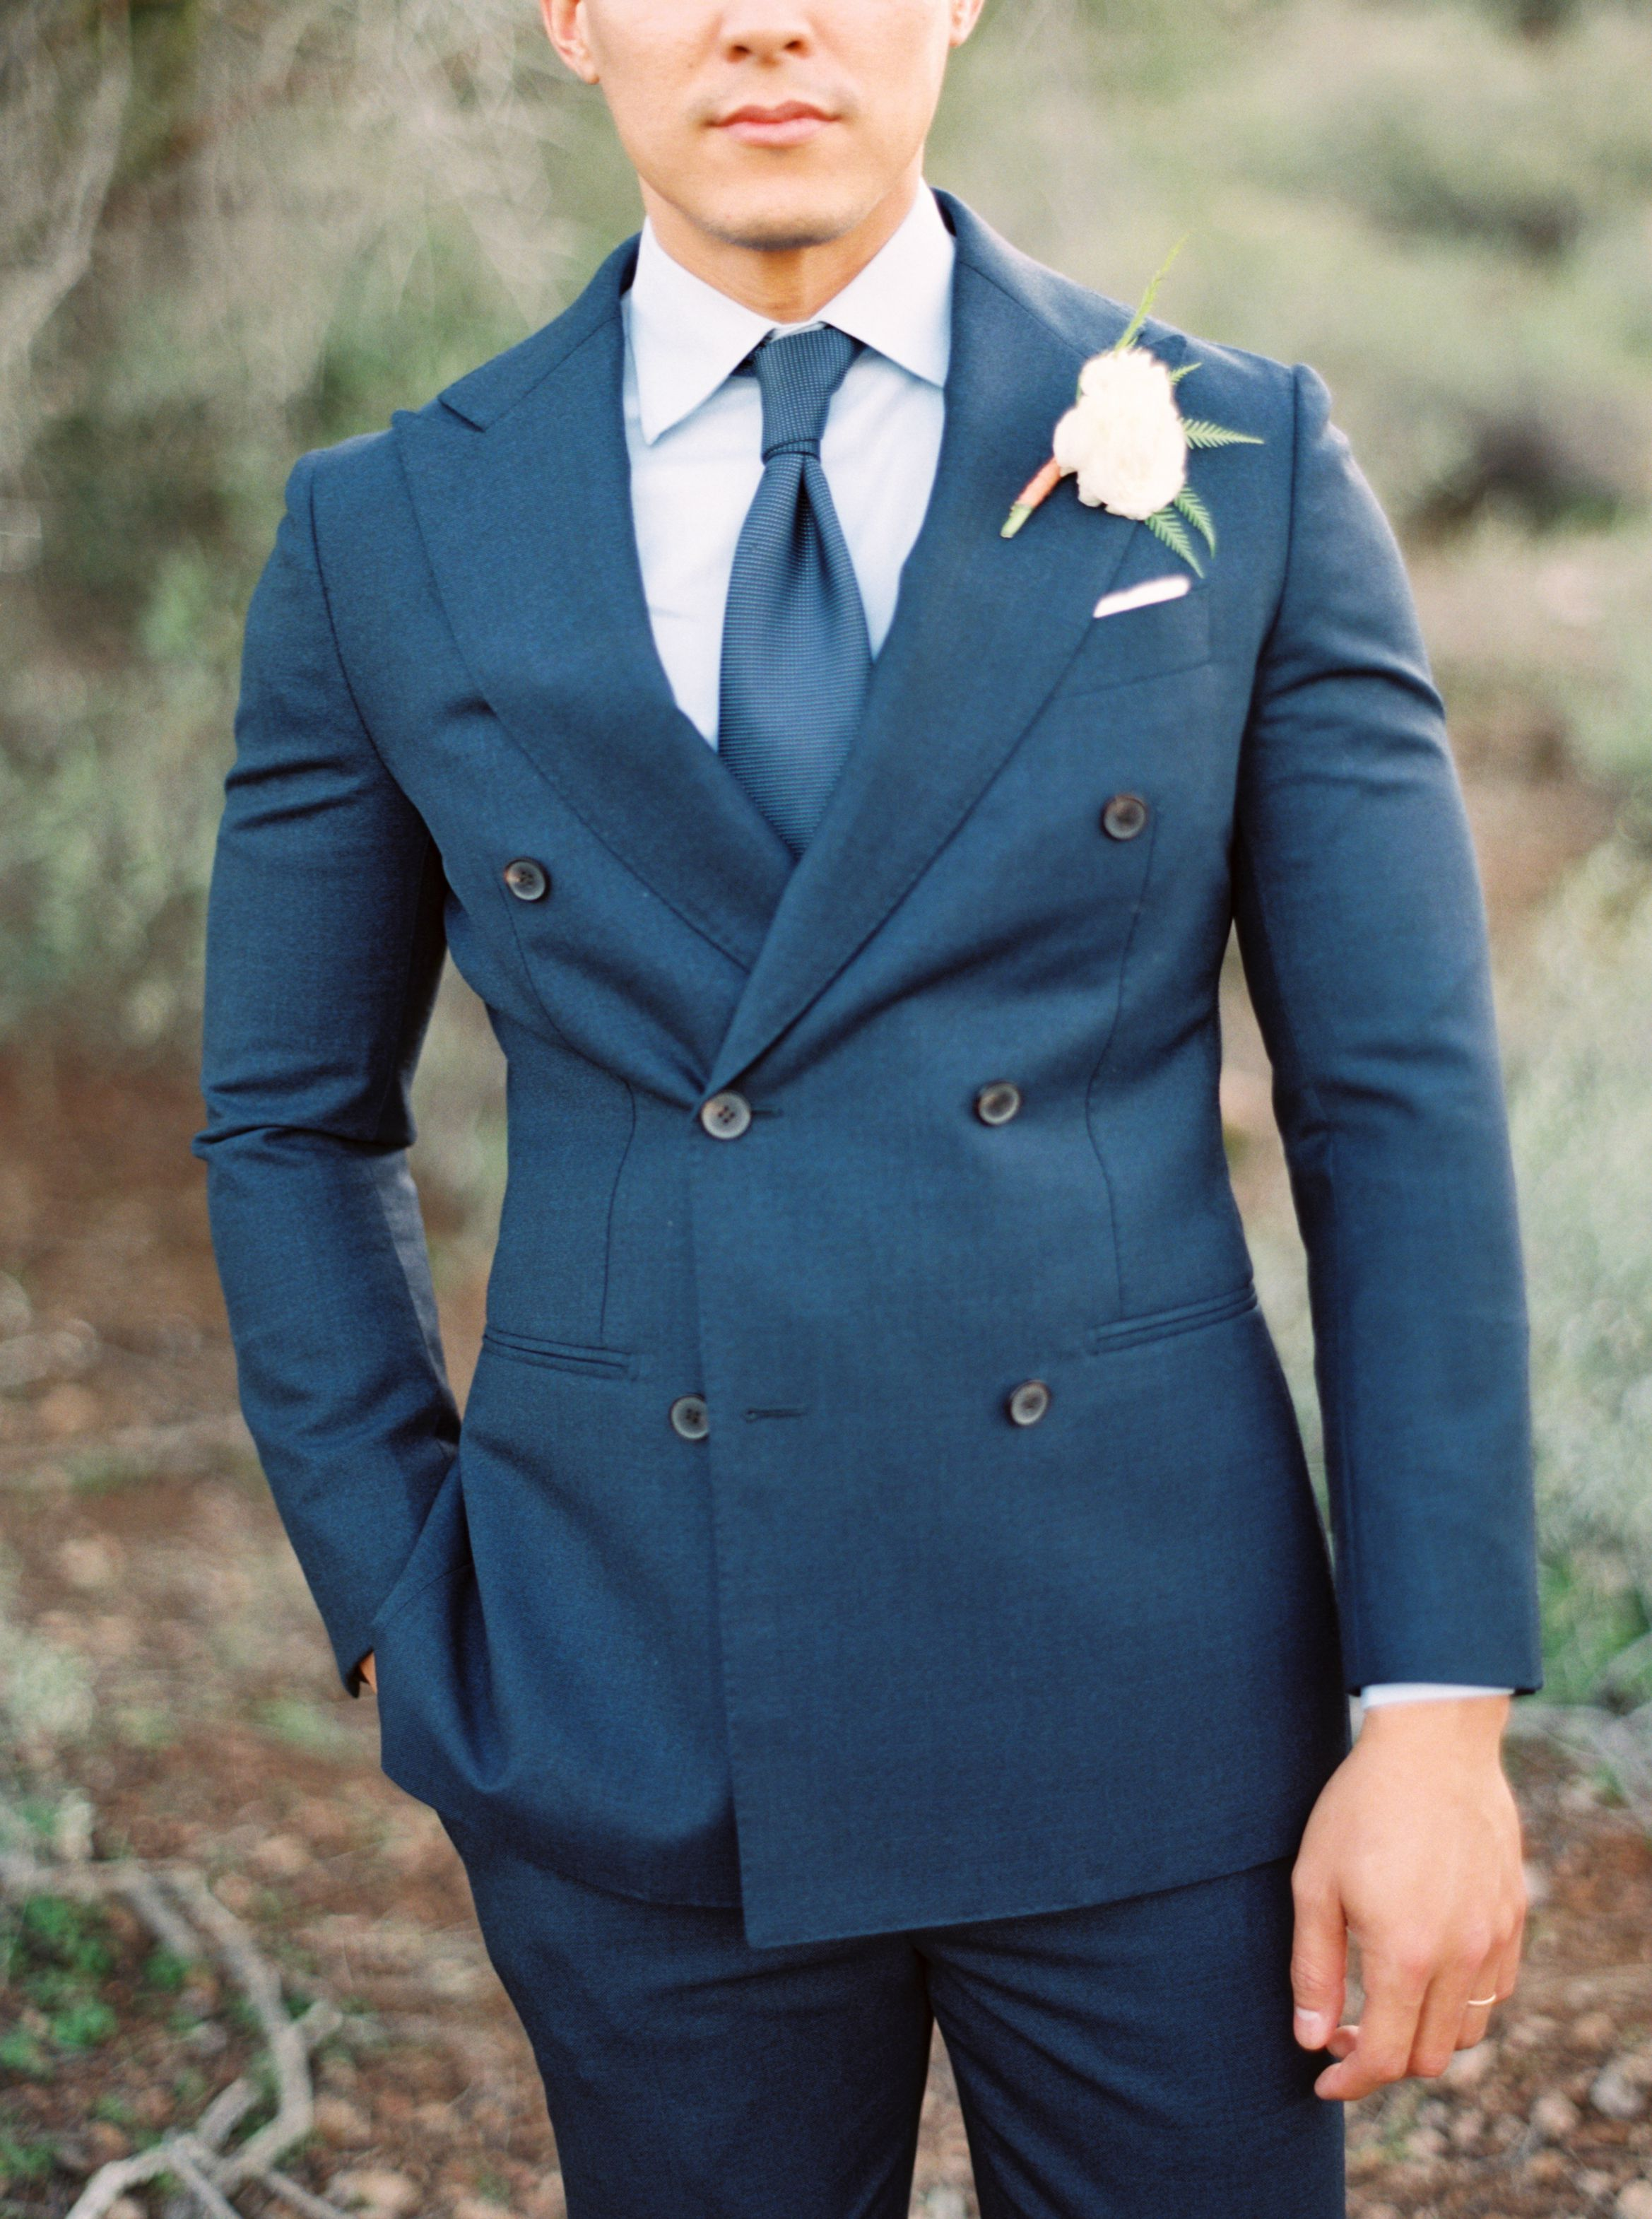 Botanica Wedding Shoot | Pinterest | Prince albert, Phoenix wedding ...